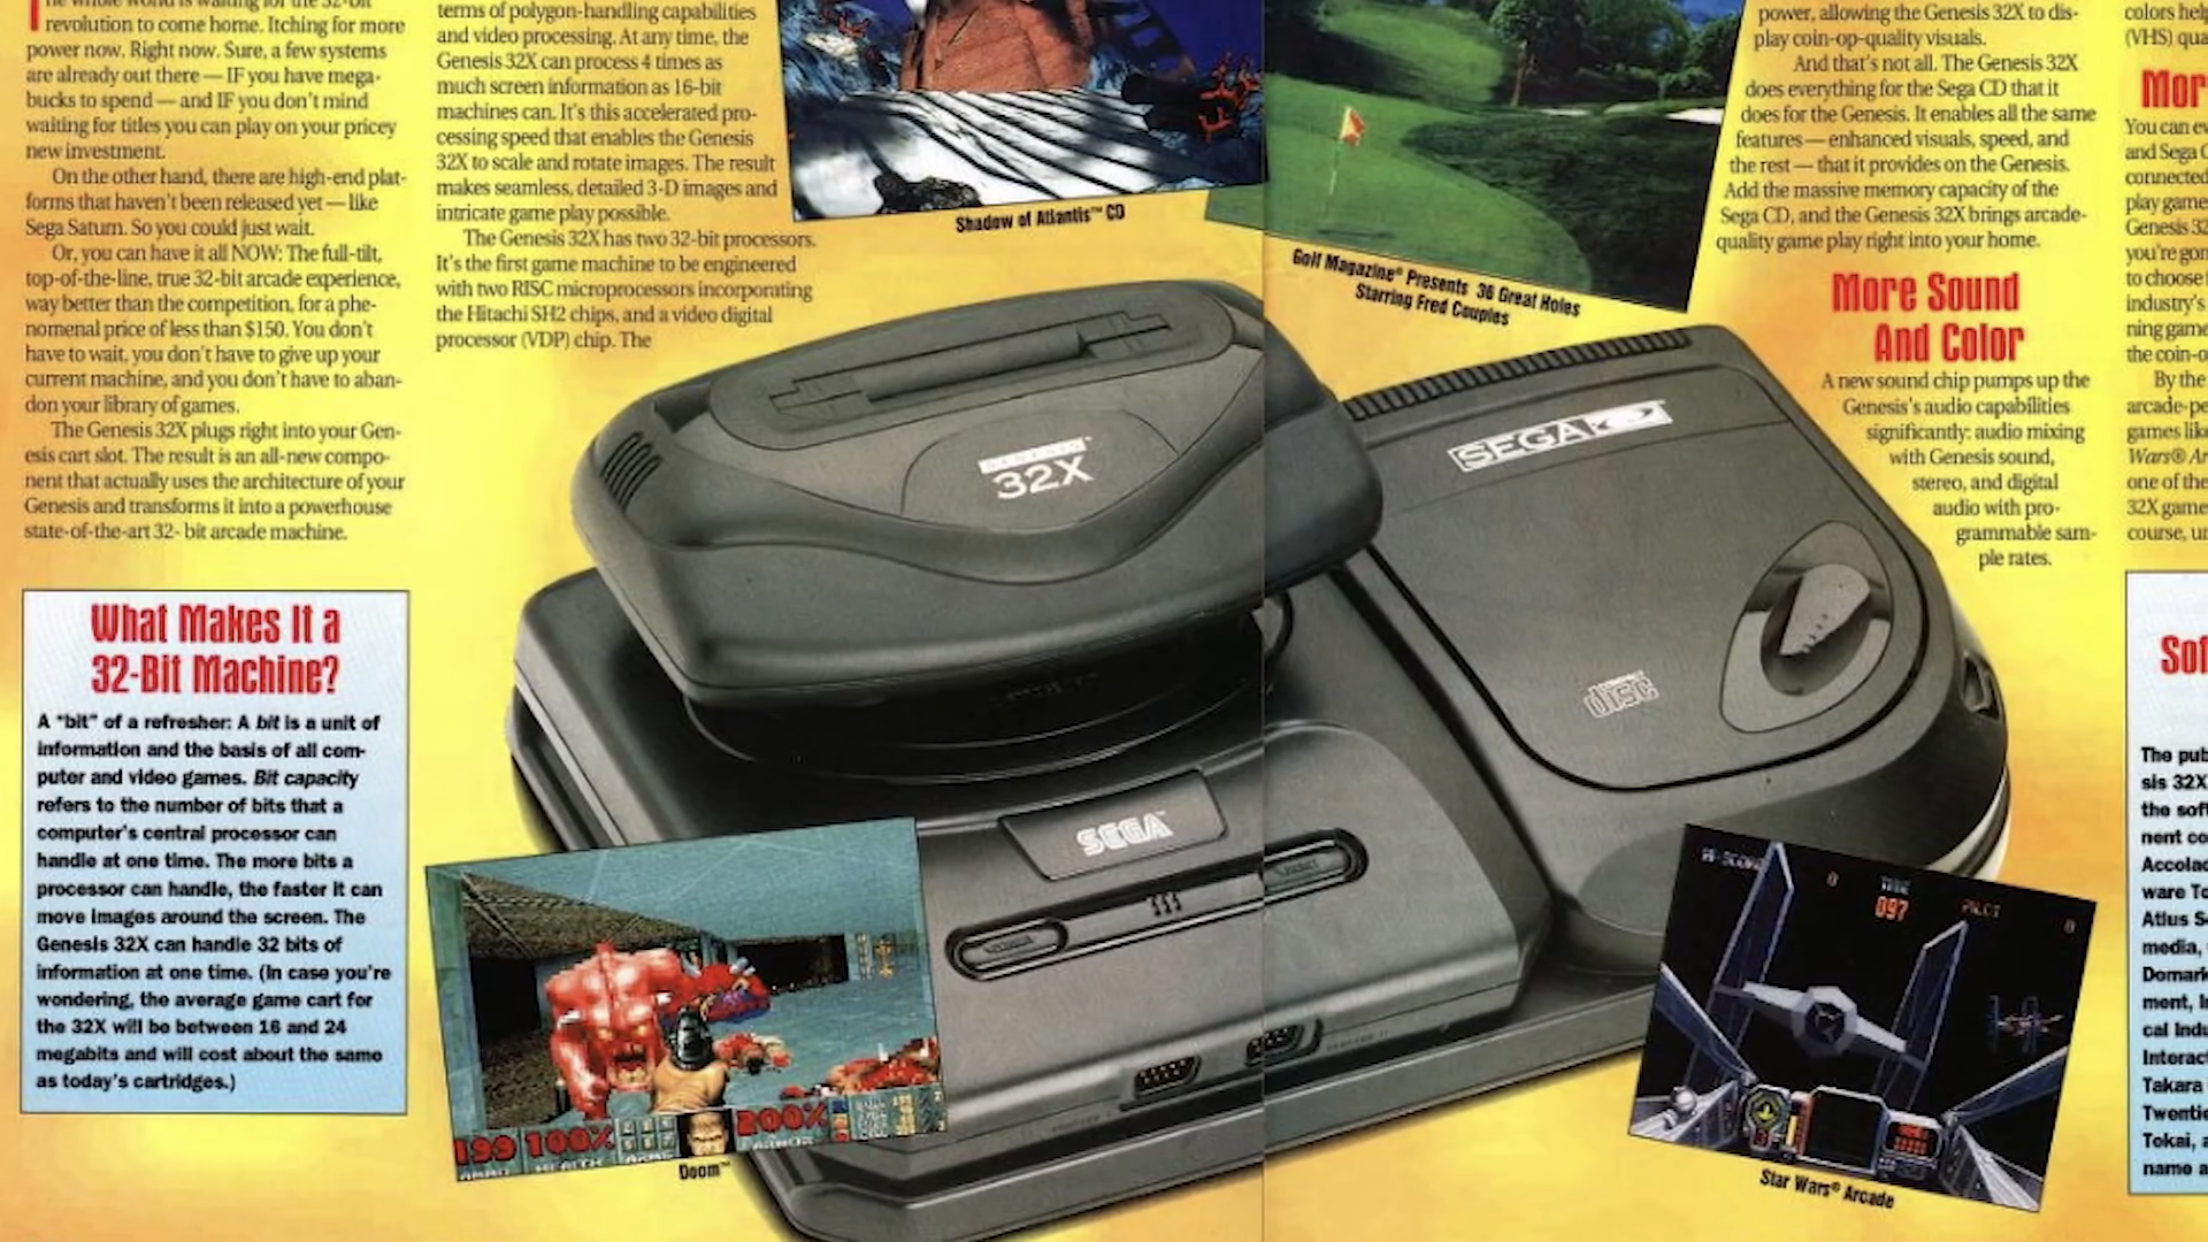 Console Magazine Sega 32x Sega Arcade Games Sega Saturn Video Games